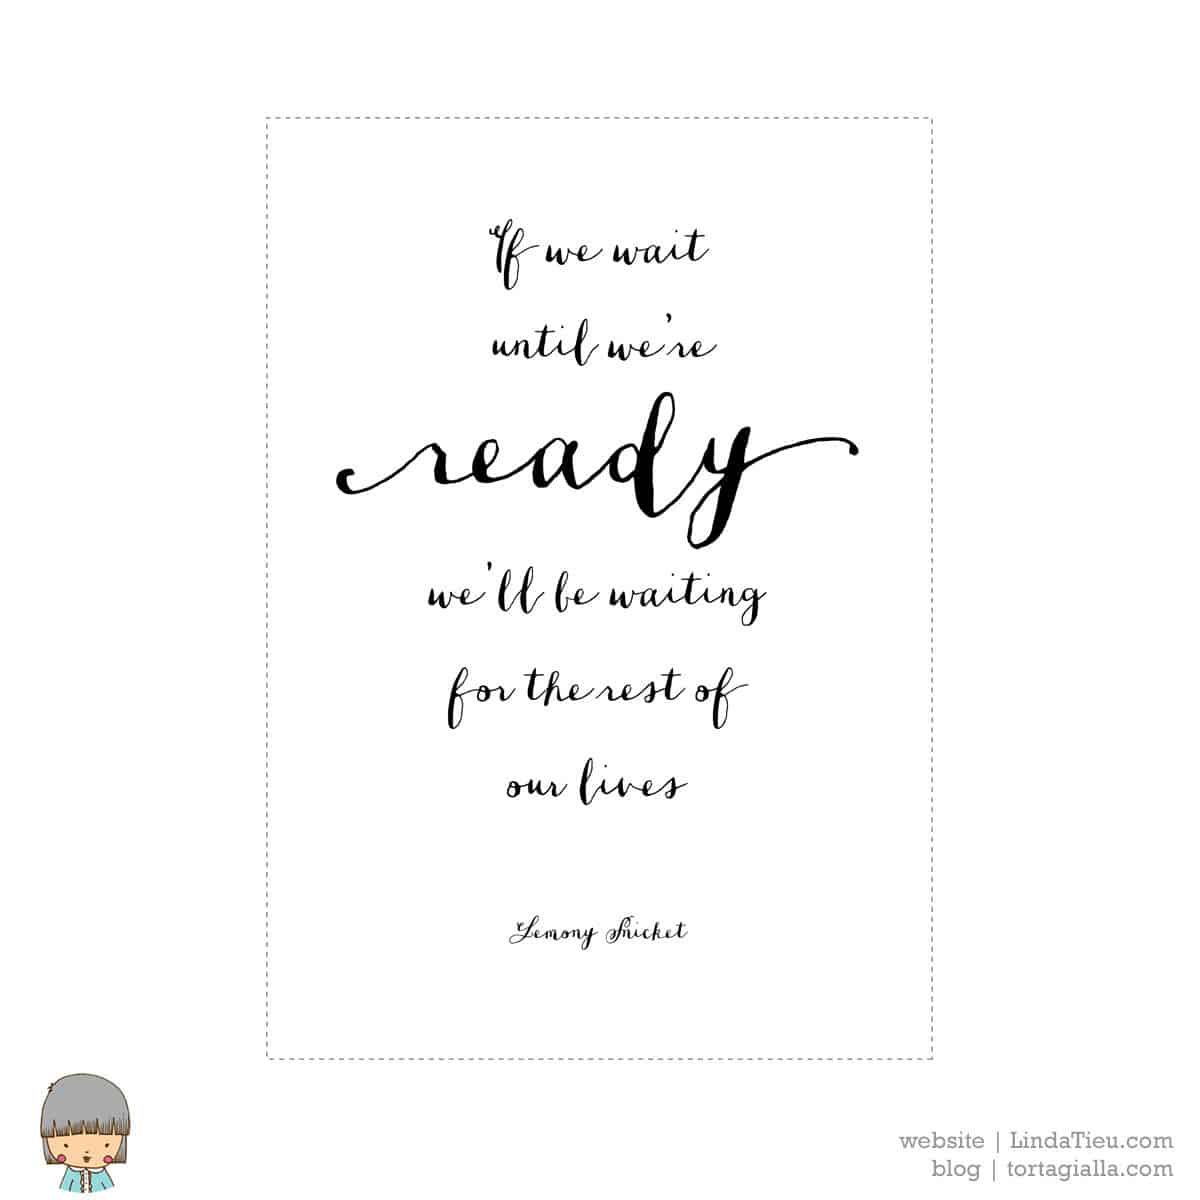 Free wall art printable: If we wait until we're ready we'll be waiting for the rest of our lives -Lemony Snicket